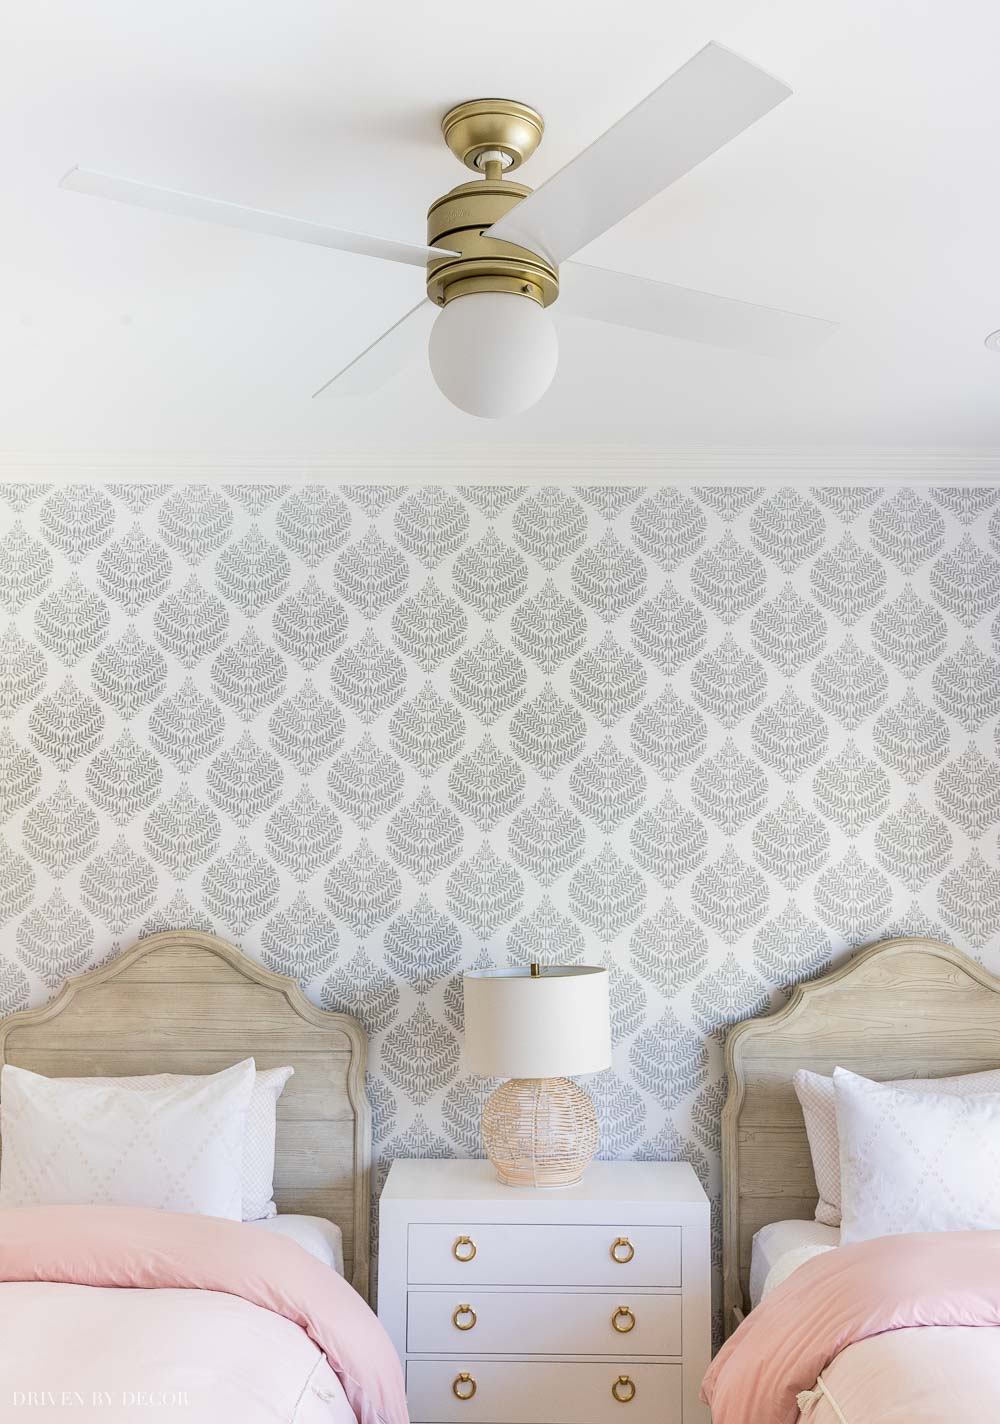 Love this ceiling fan I have in two bedrooms - such an awesome Amazon home find!